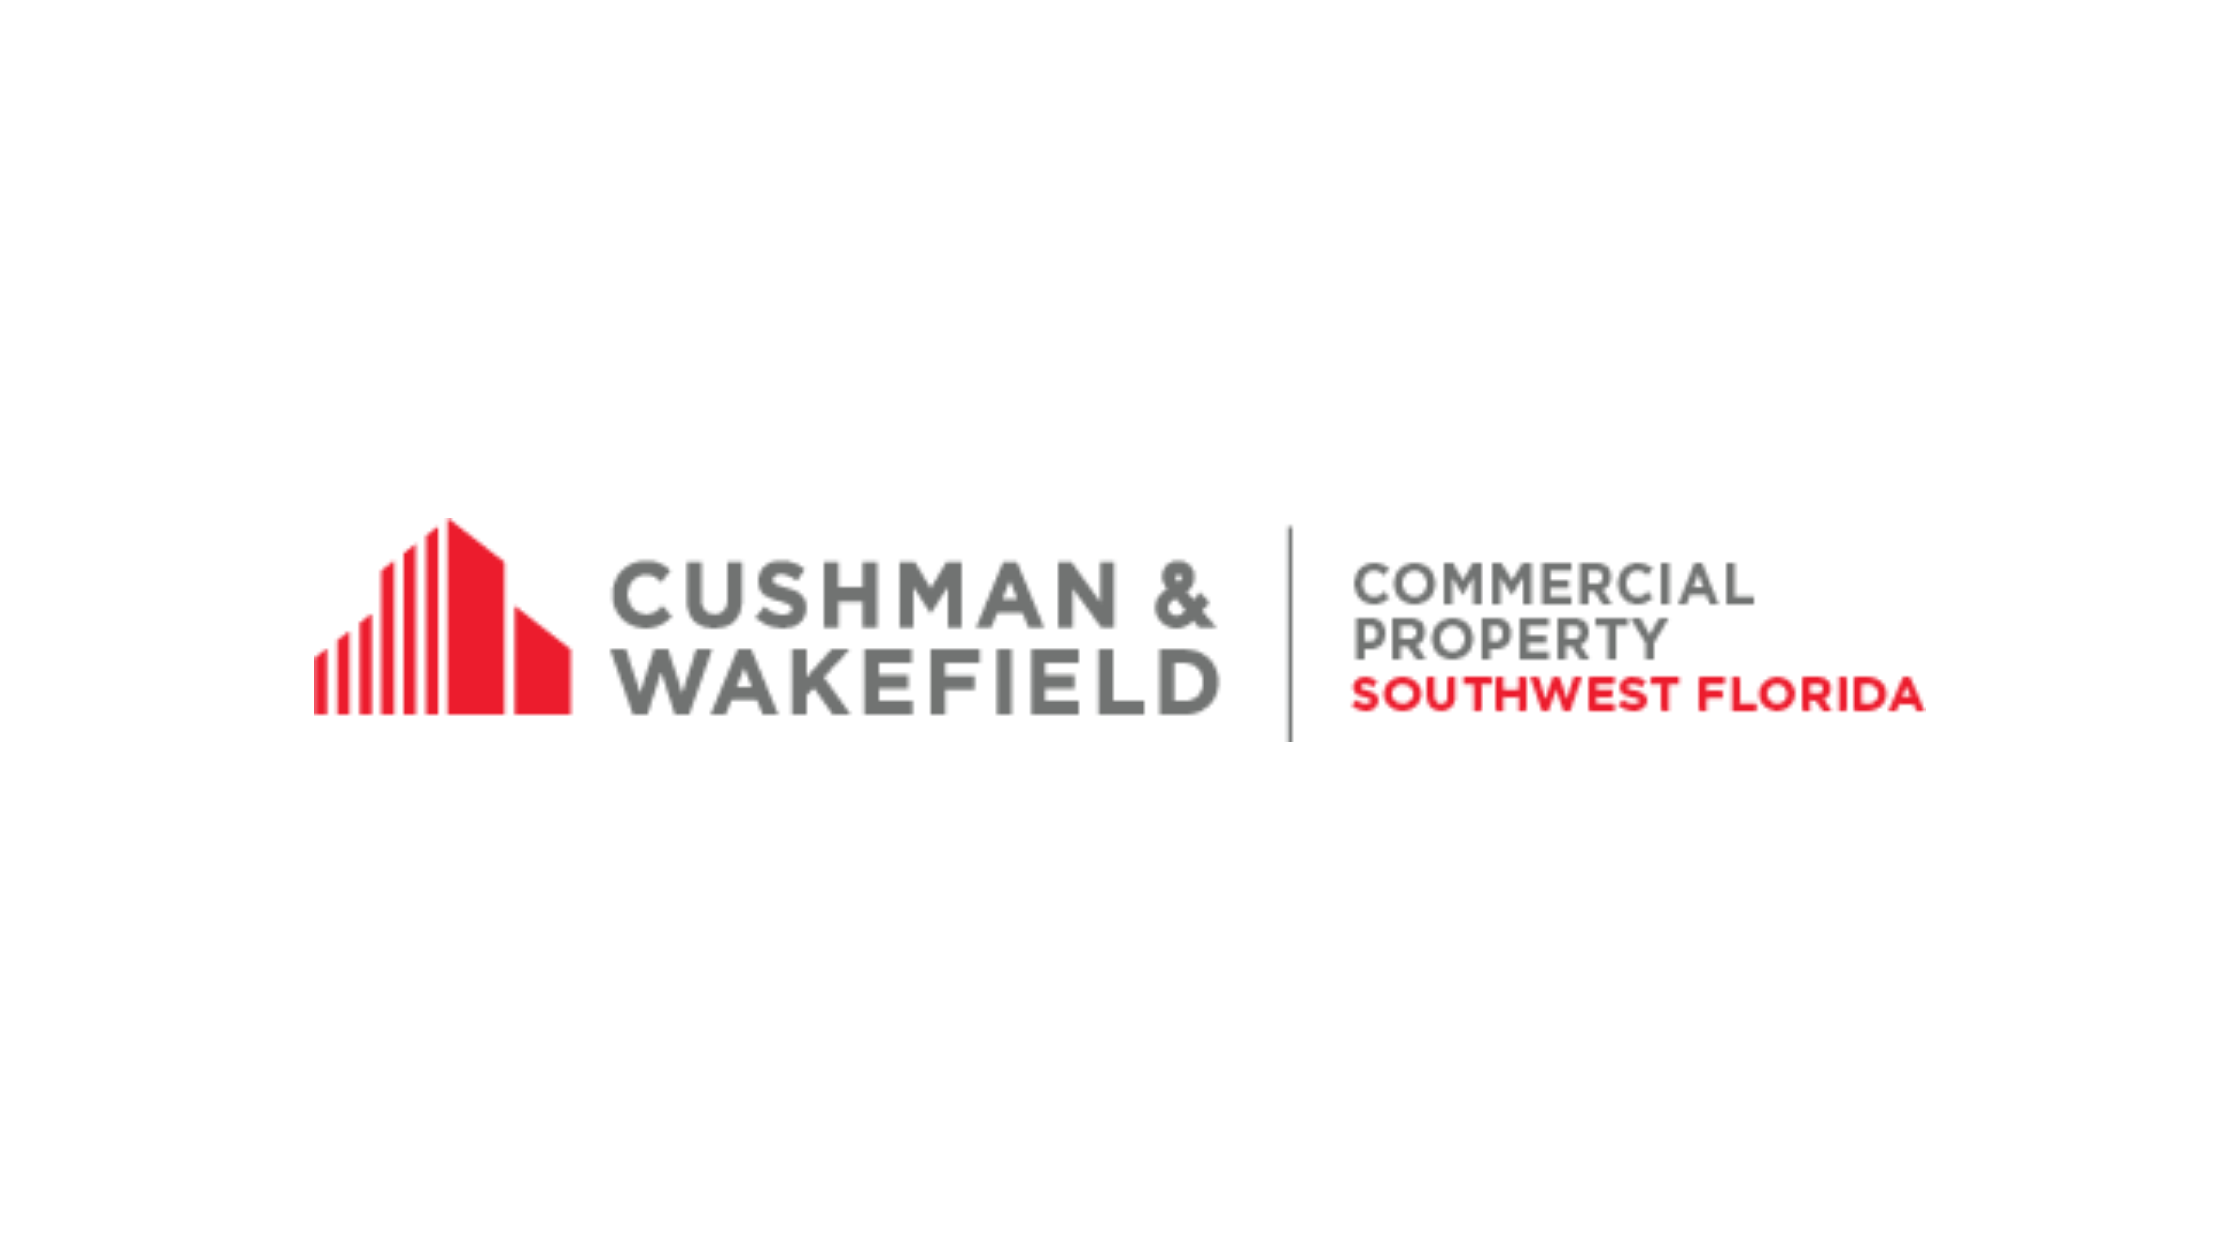 Cushman & Wakefield | Commercial Property Southwest Florida brokers $1.25 million sale of Punta Gorda office space